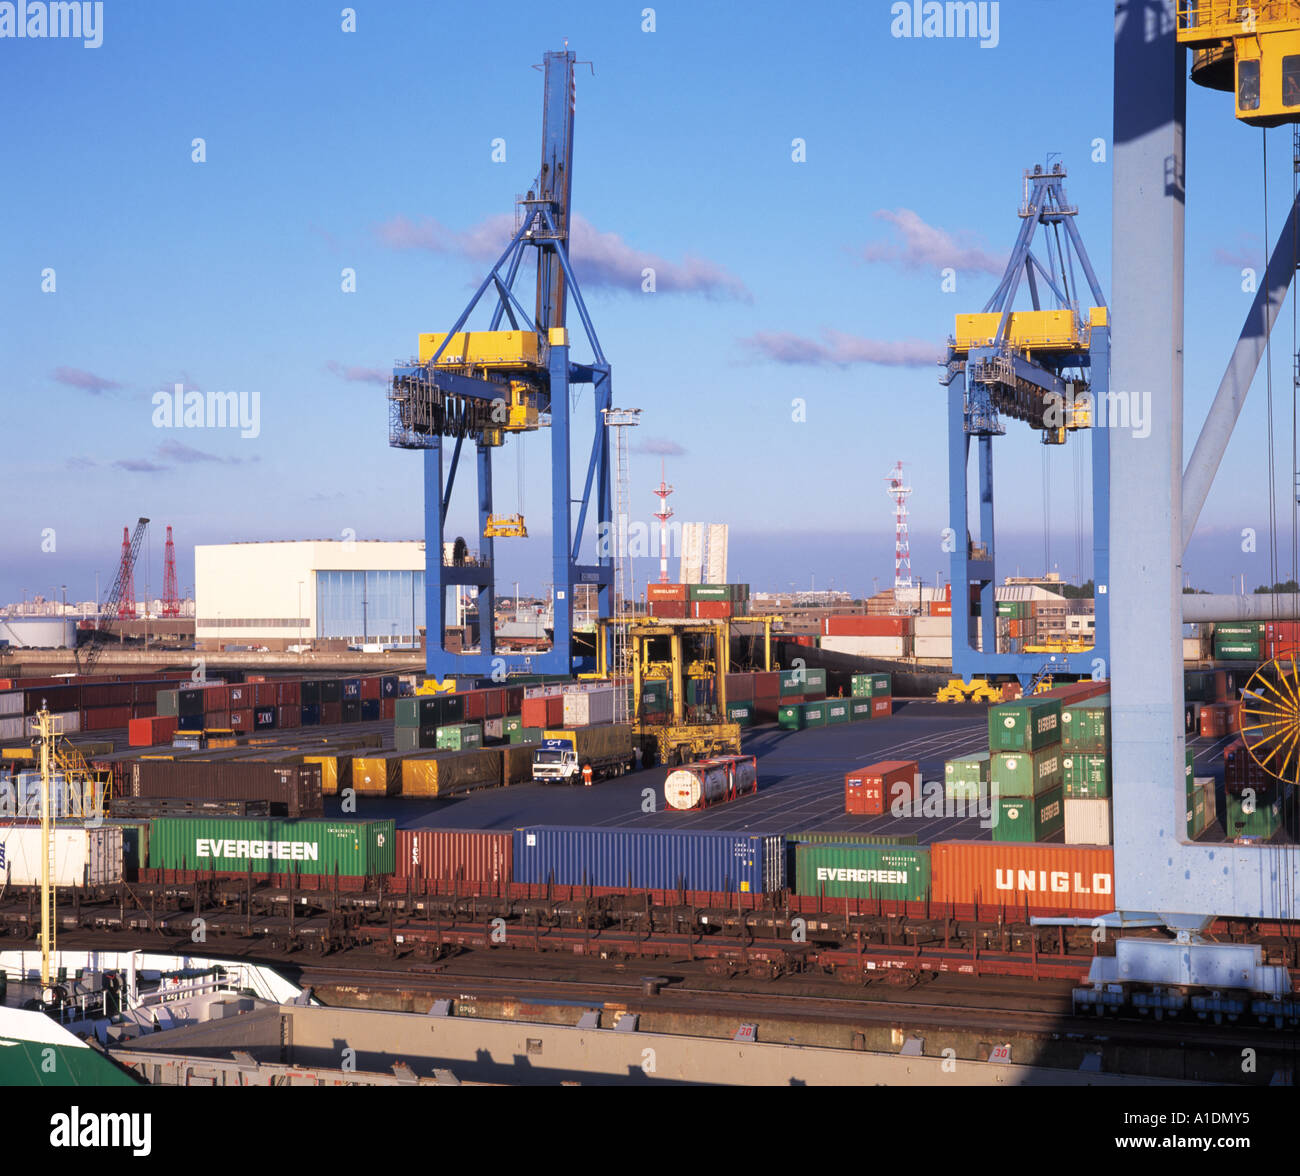 Belgium zeebrugge ferry container terminal stock photo royalty free image 5844148 alamy - Where is zeebrugge ferry port ...